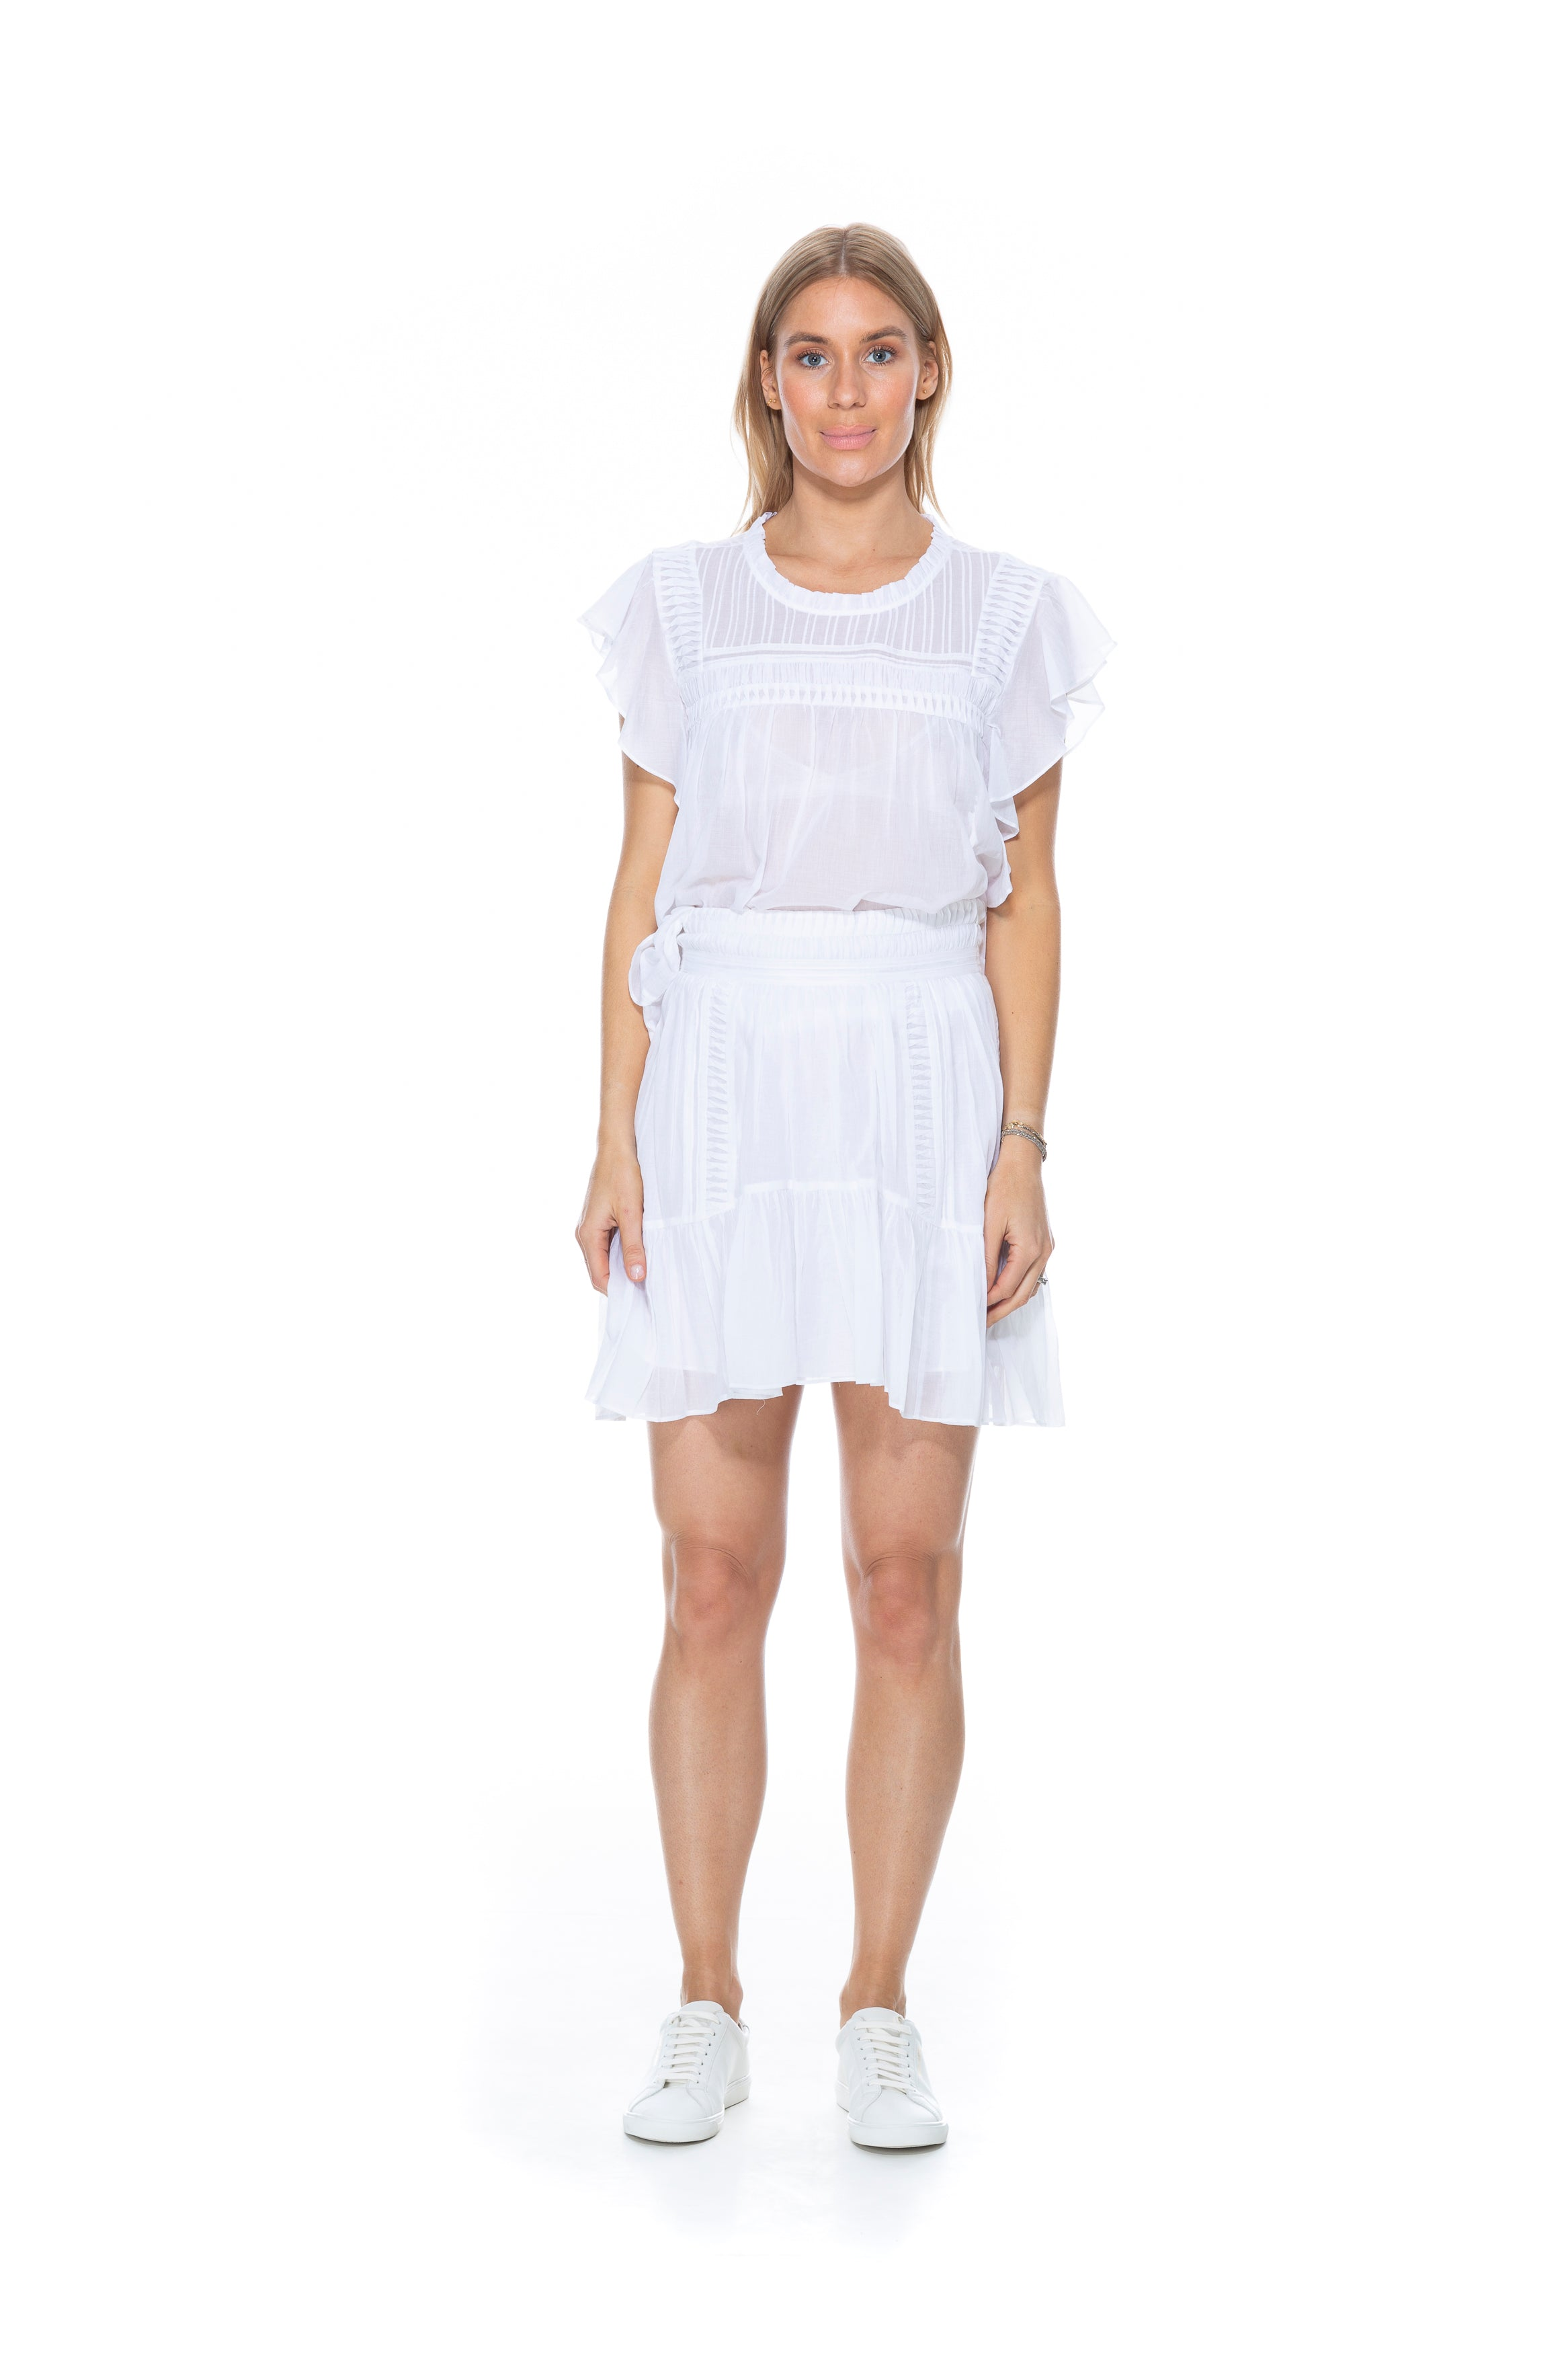 LAYONA TOP WHITE